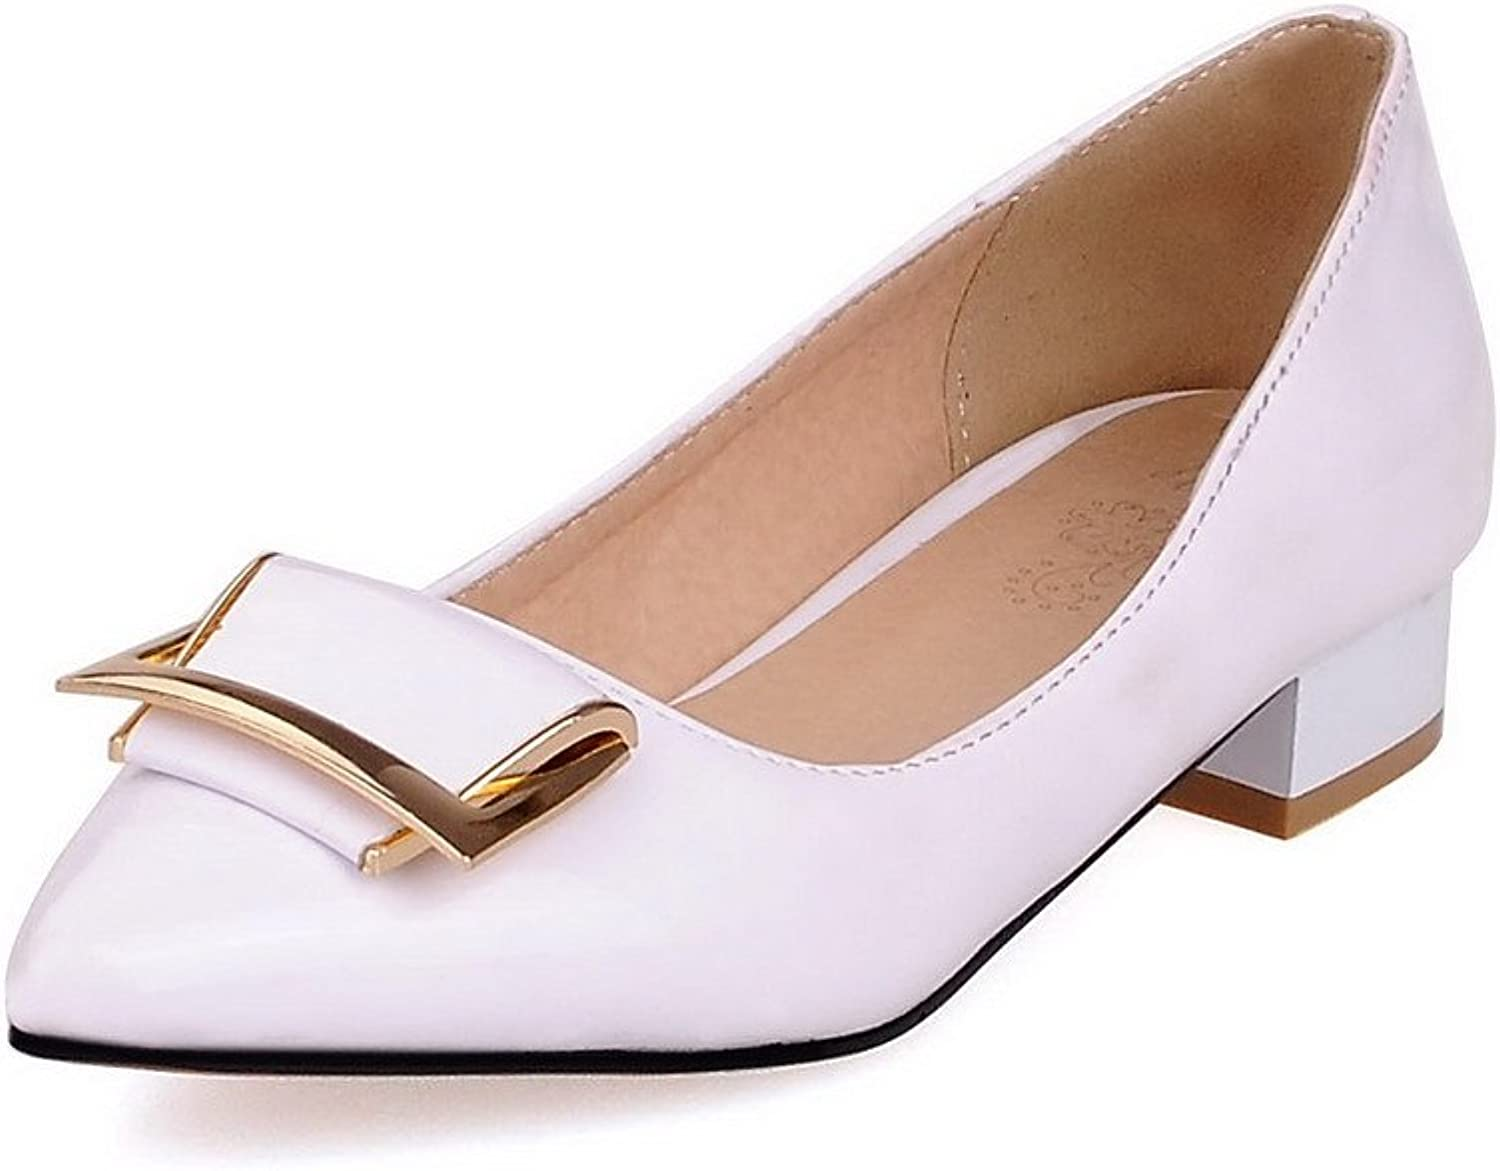 WeenFashion Women's Pointed Closed Toe Low Heels Solid Pull On Pumps-shoes